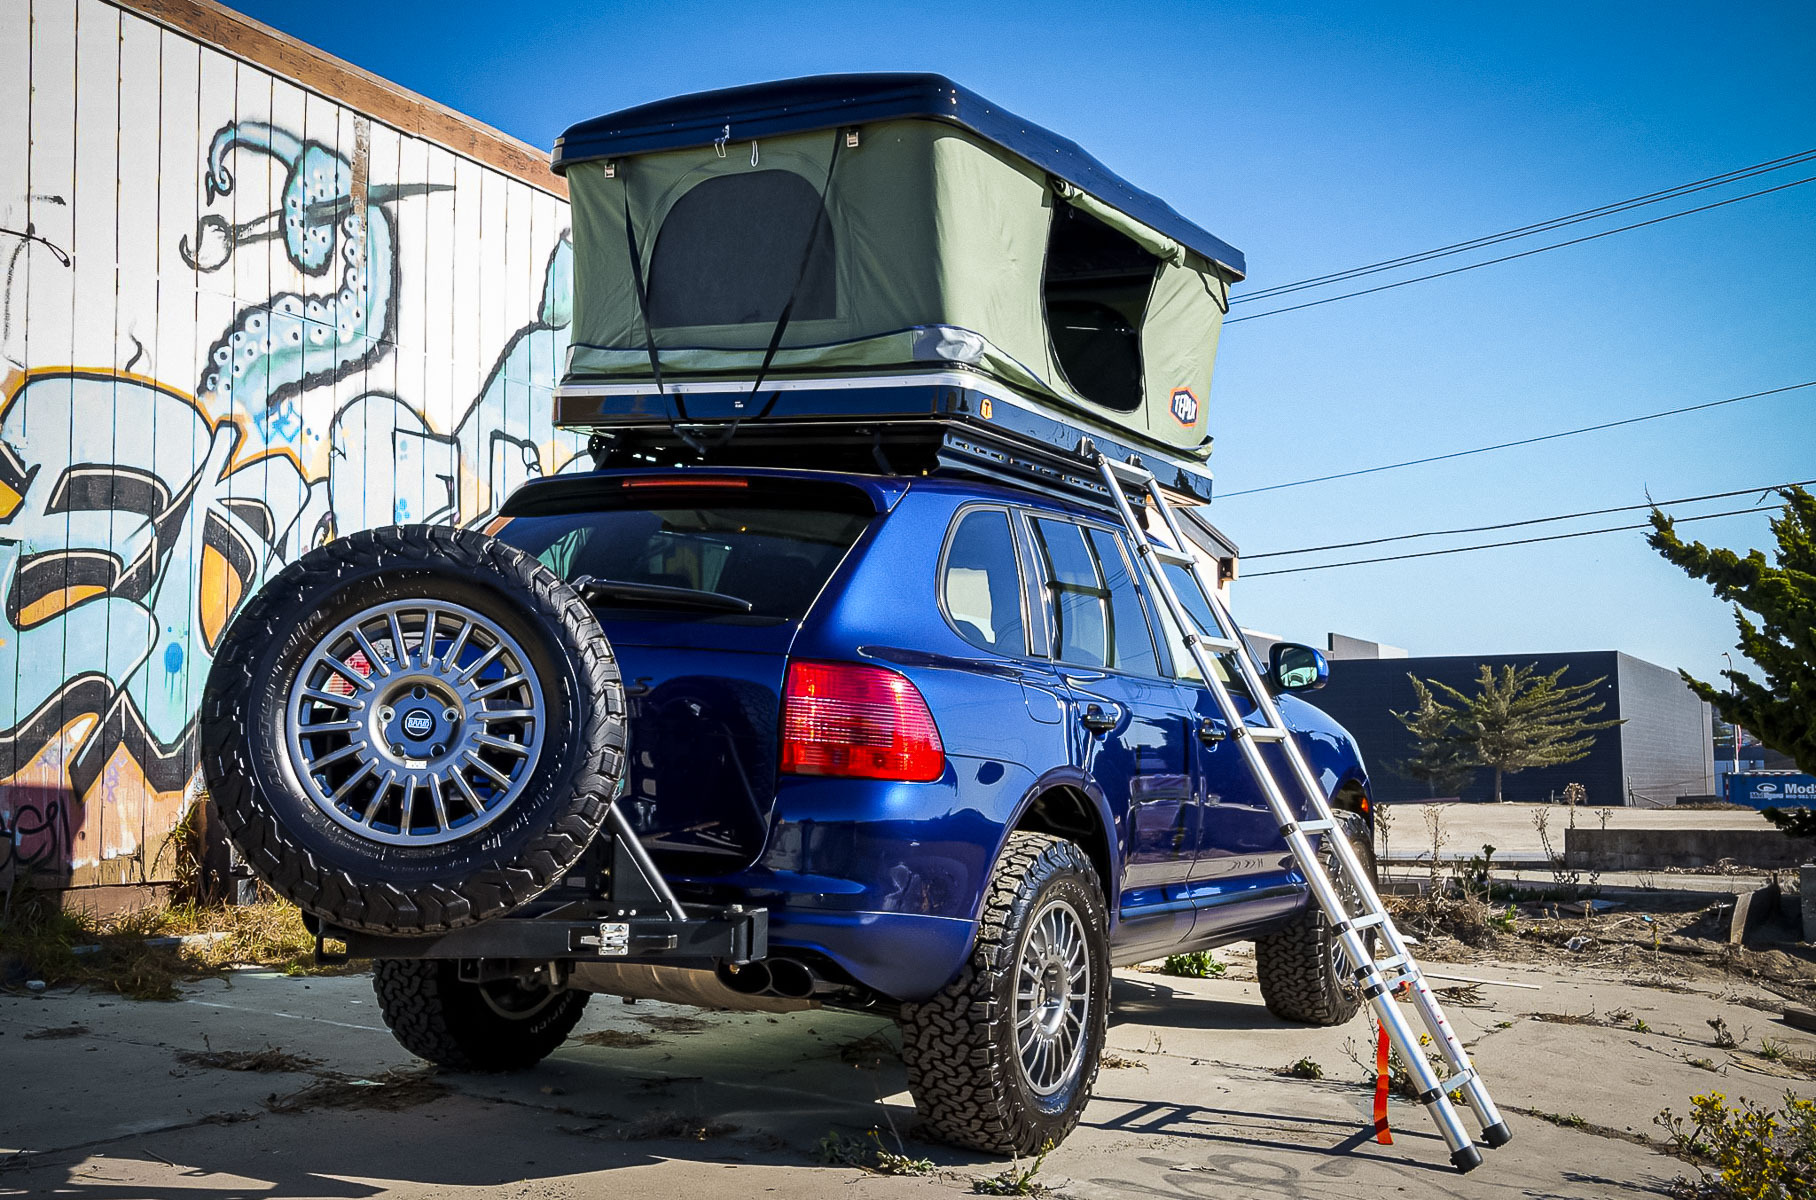 Bring-a-Trailer is offering a rather impressive-looking blue 2006 Porsche Cayenne Turbo S remodeled into a serious SUV for off-roading and camping.